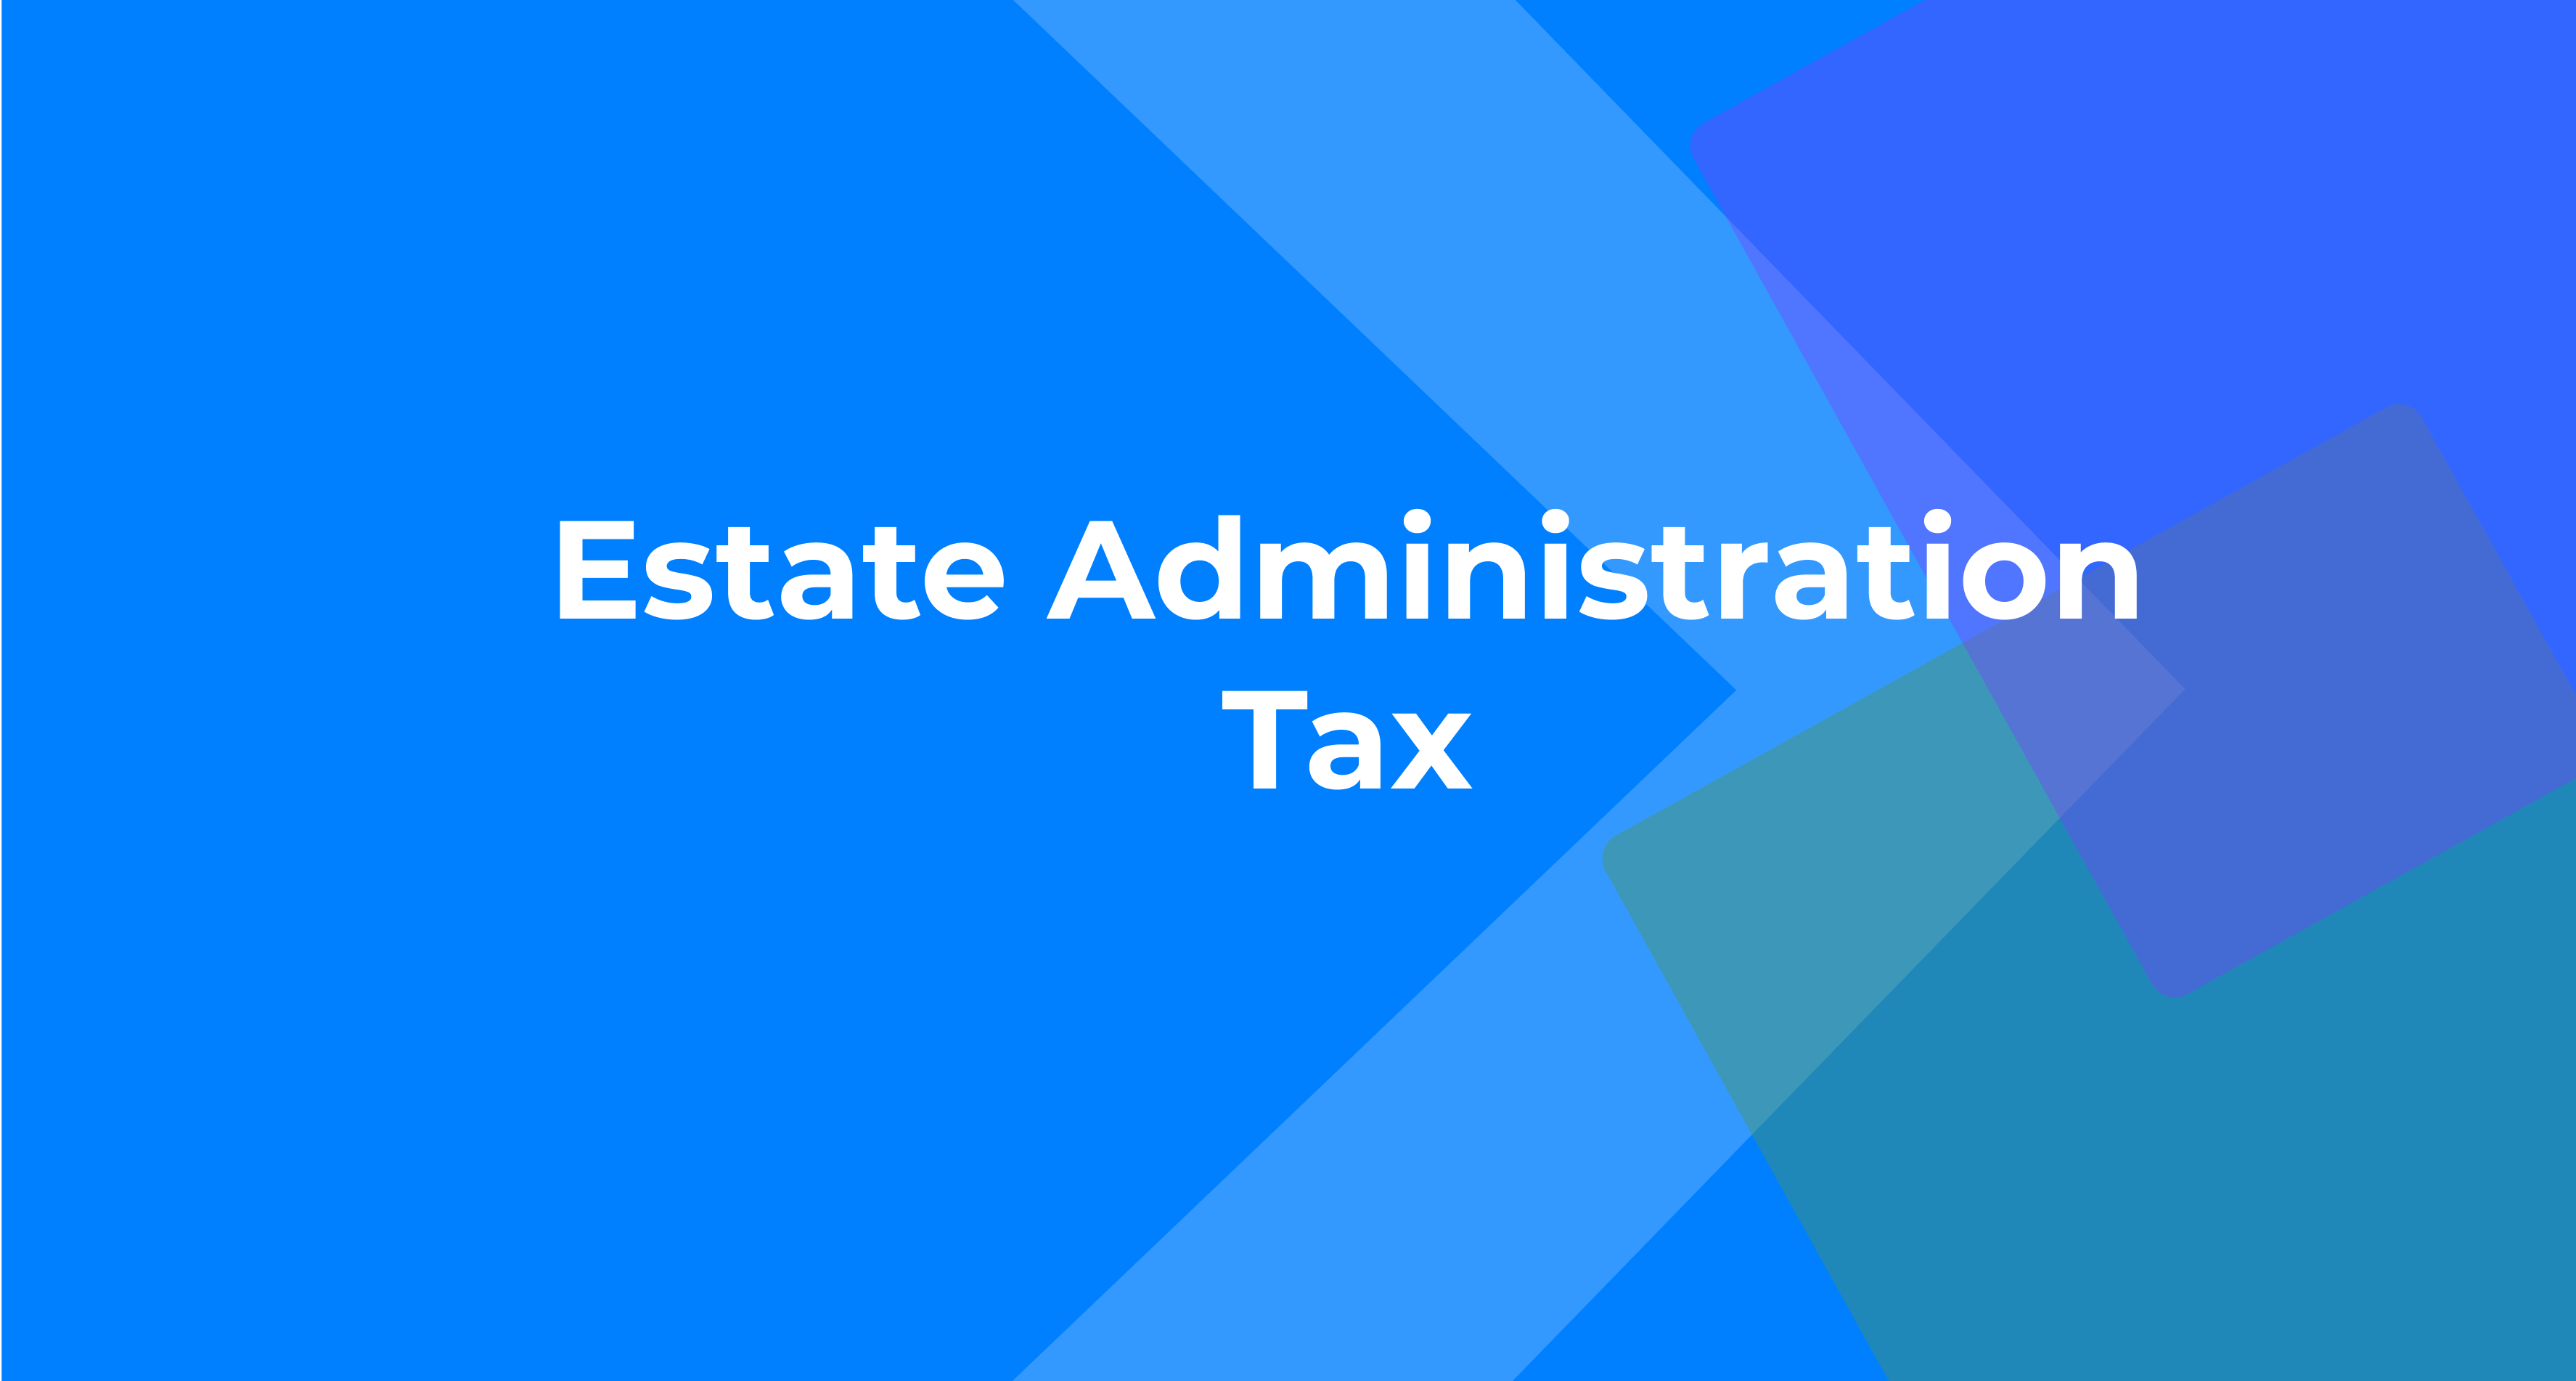 Estate Administration Tax